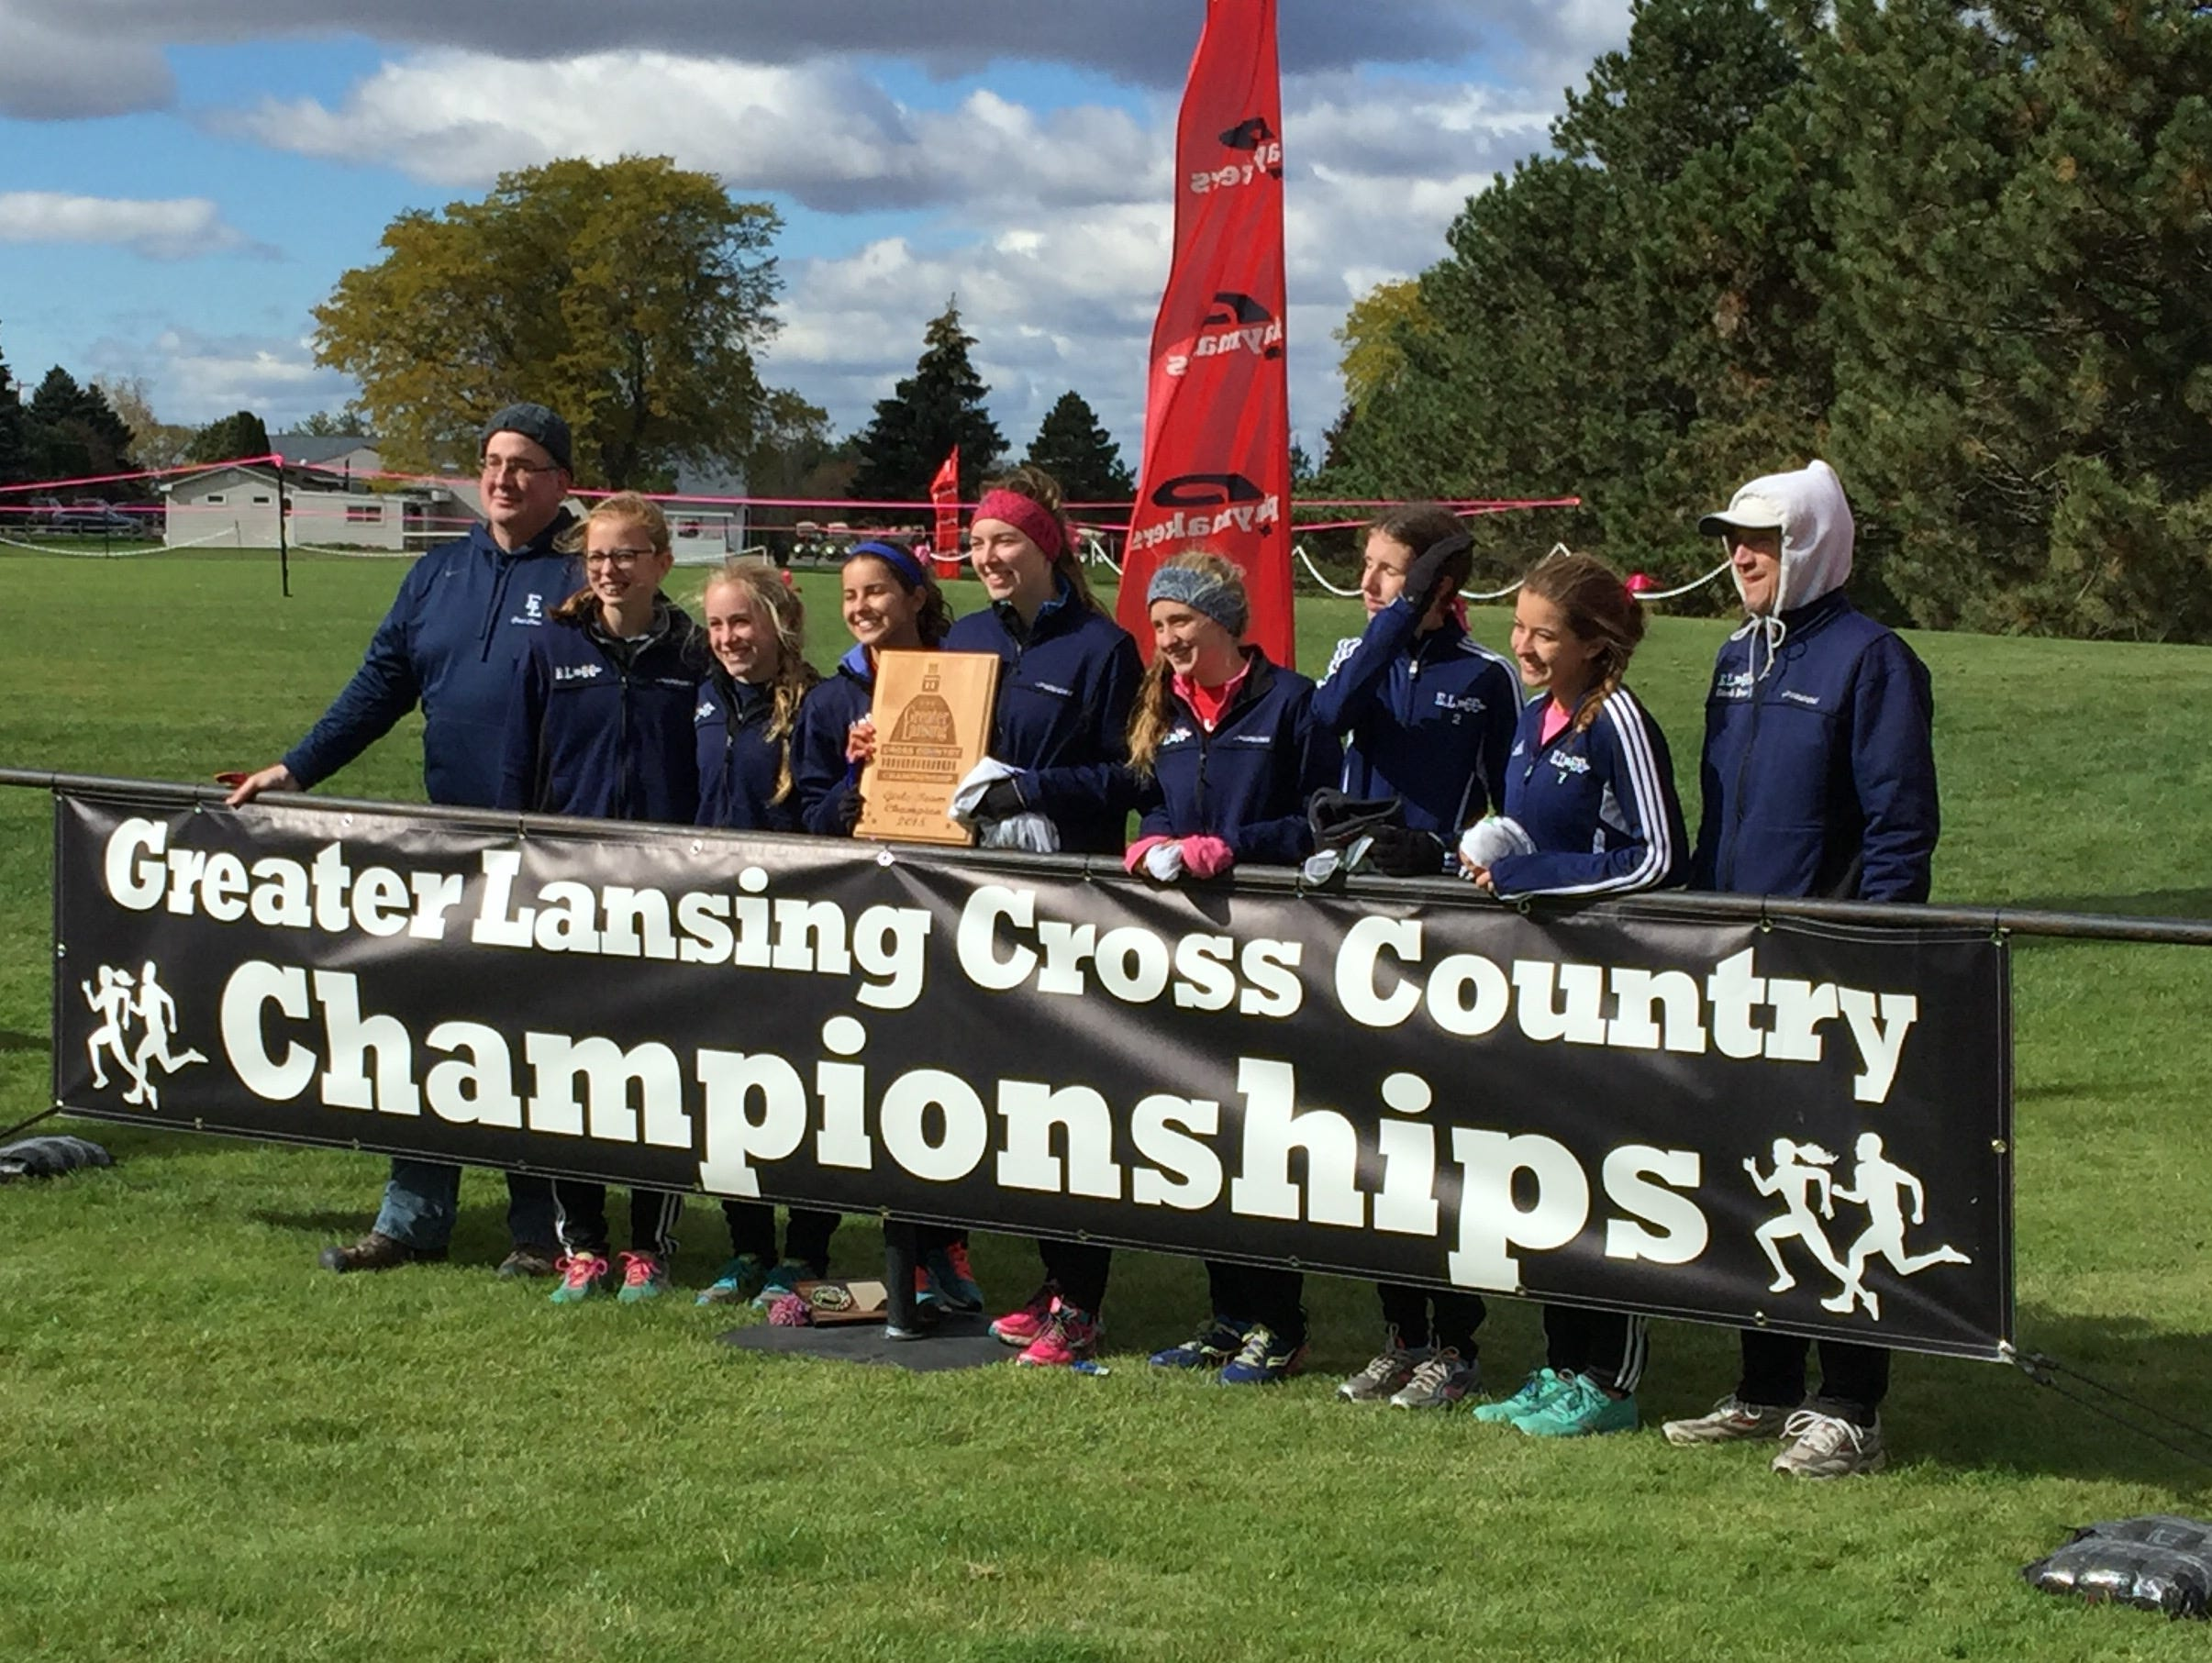 The East Lansing girls cross country team edged DeWitt for the team title at the Greater Lansing Cross Country Championships.